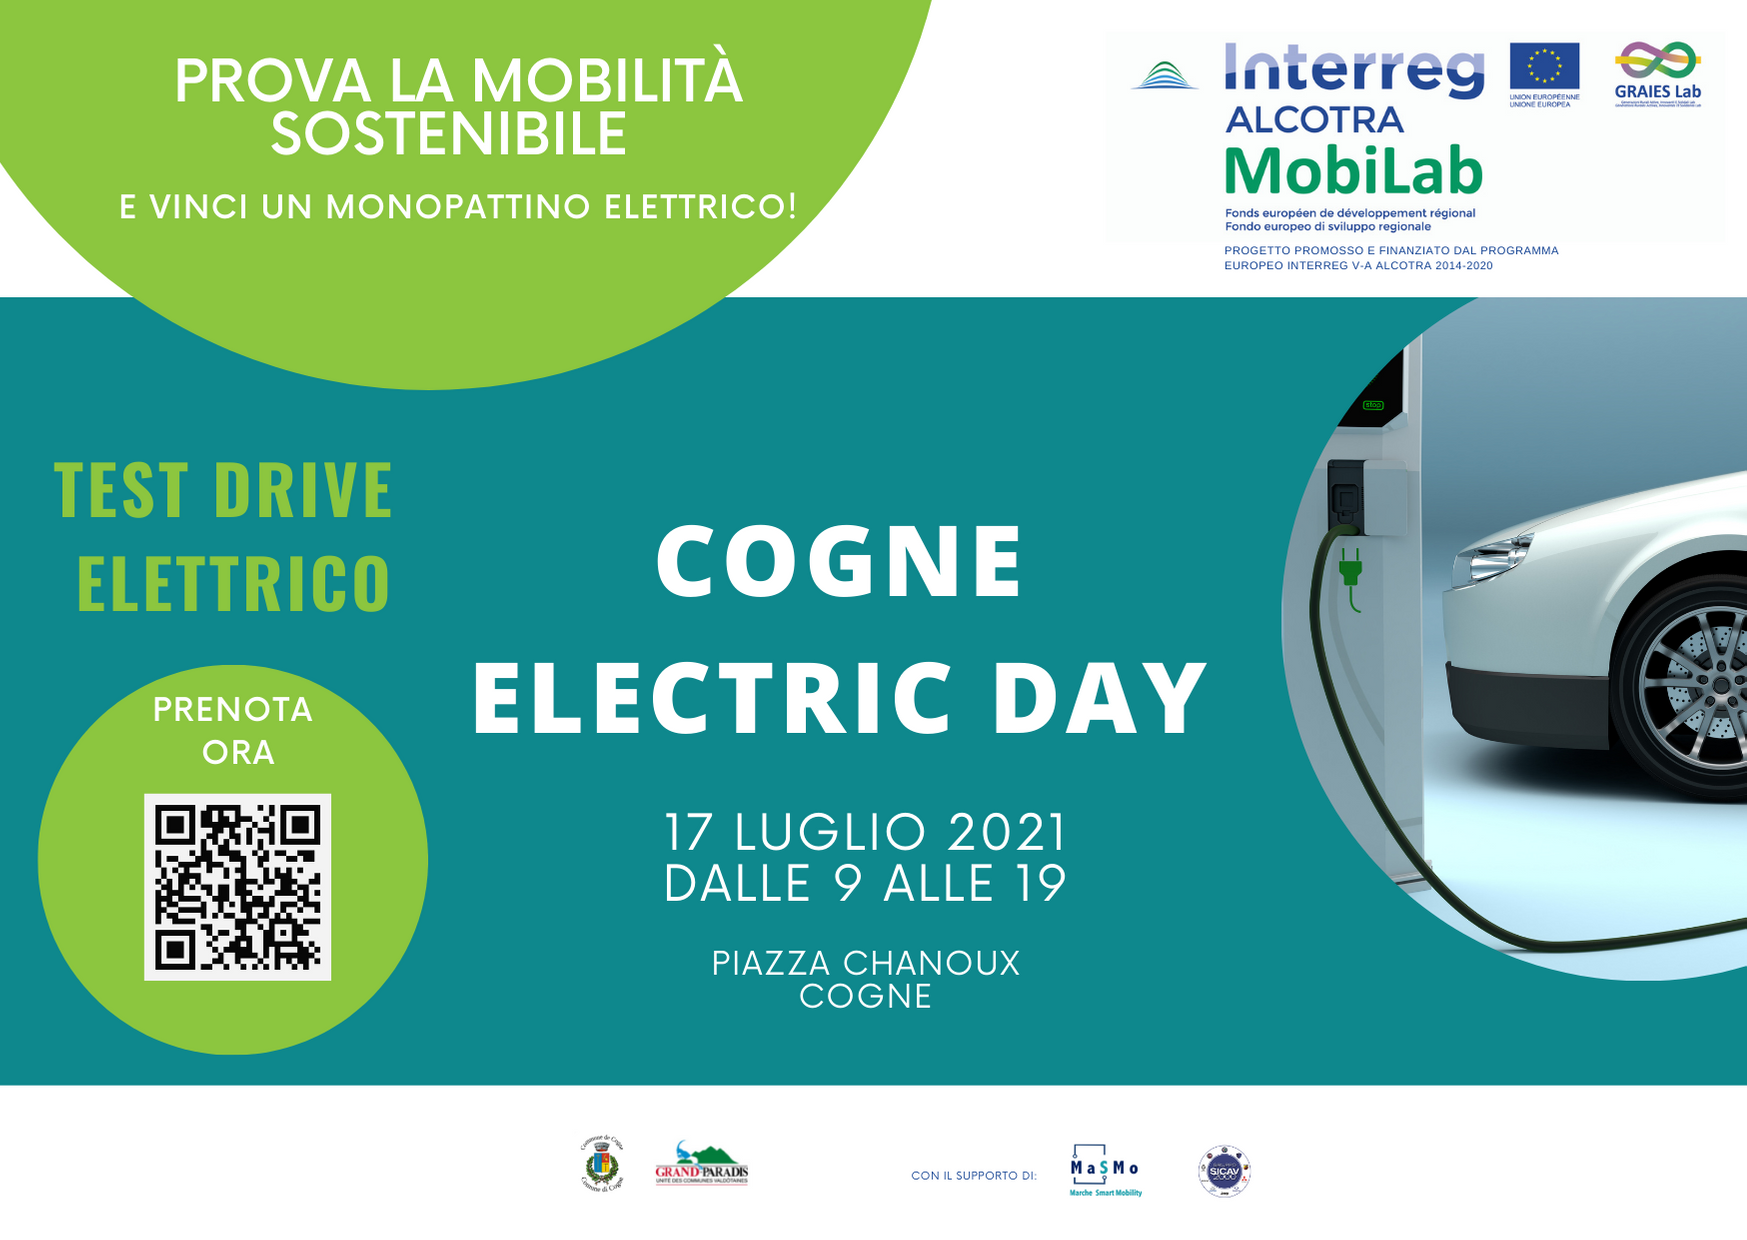 cogne electric day